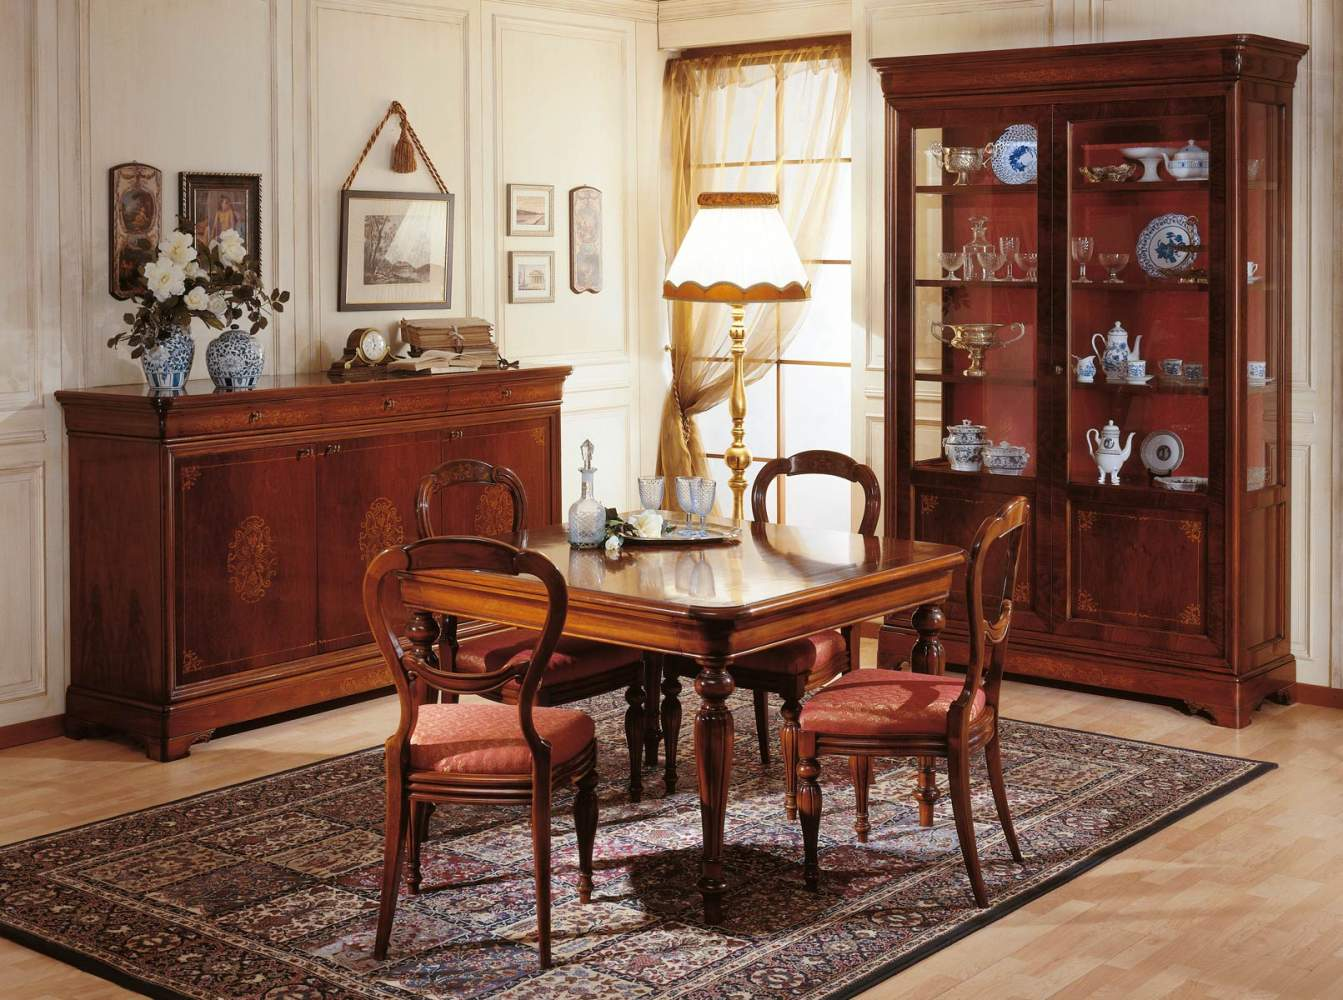 Dining room 19th century french vimercati classic furniture - Mobili classici cantu ...